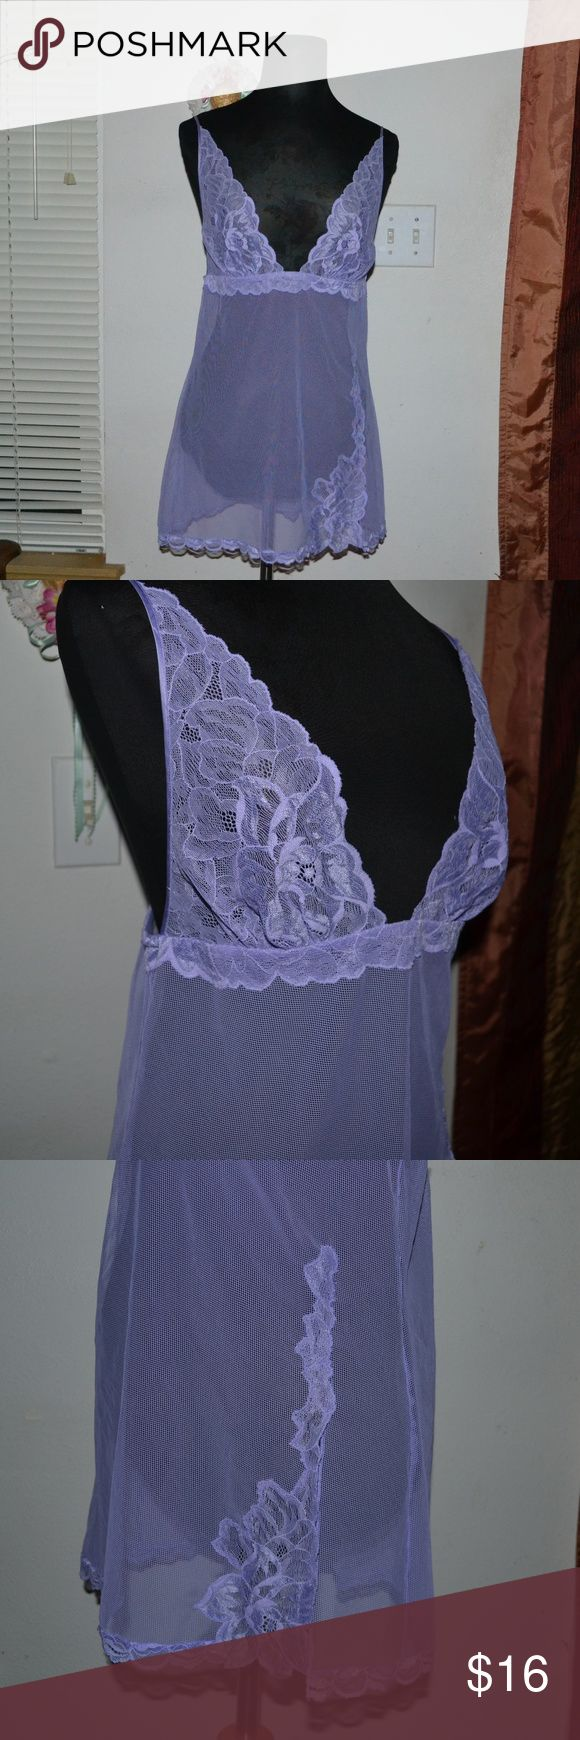 Victoria Secret silk lavender baby doll Smoke free home! I ship Monday - Friday! NO HOLDS OR TRADES!!! Offers are always welcomed as long as they're submitted through the OFFER BUTTON!   A gorgeous lavender cami by the brand Victoria Secret  main fabric  72% nylon 28% spandex component fabric 100% silk size medium. Victoria's Secret Intimates & Sleepwear Chemises & Slips